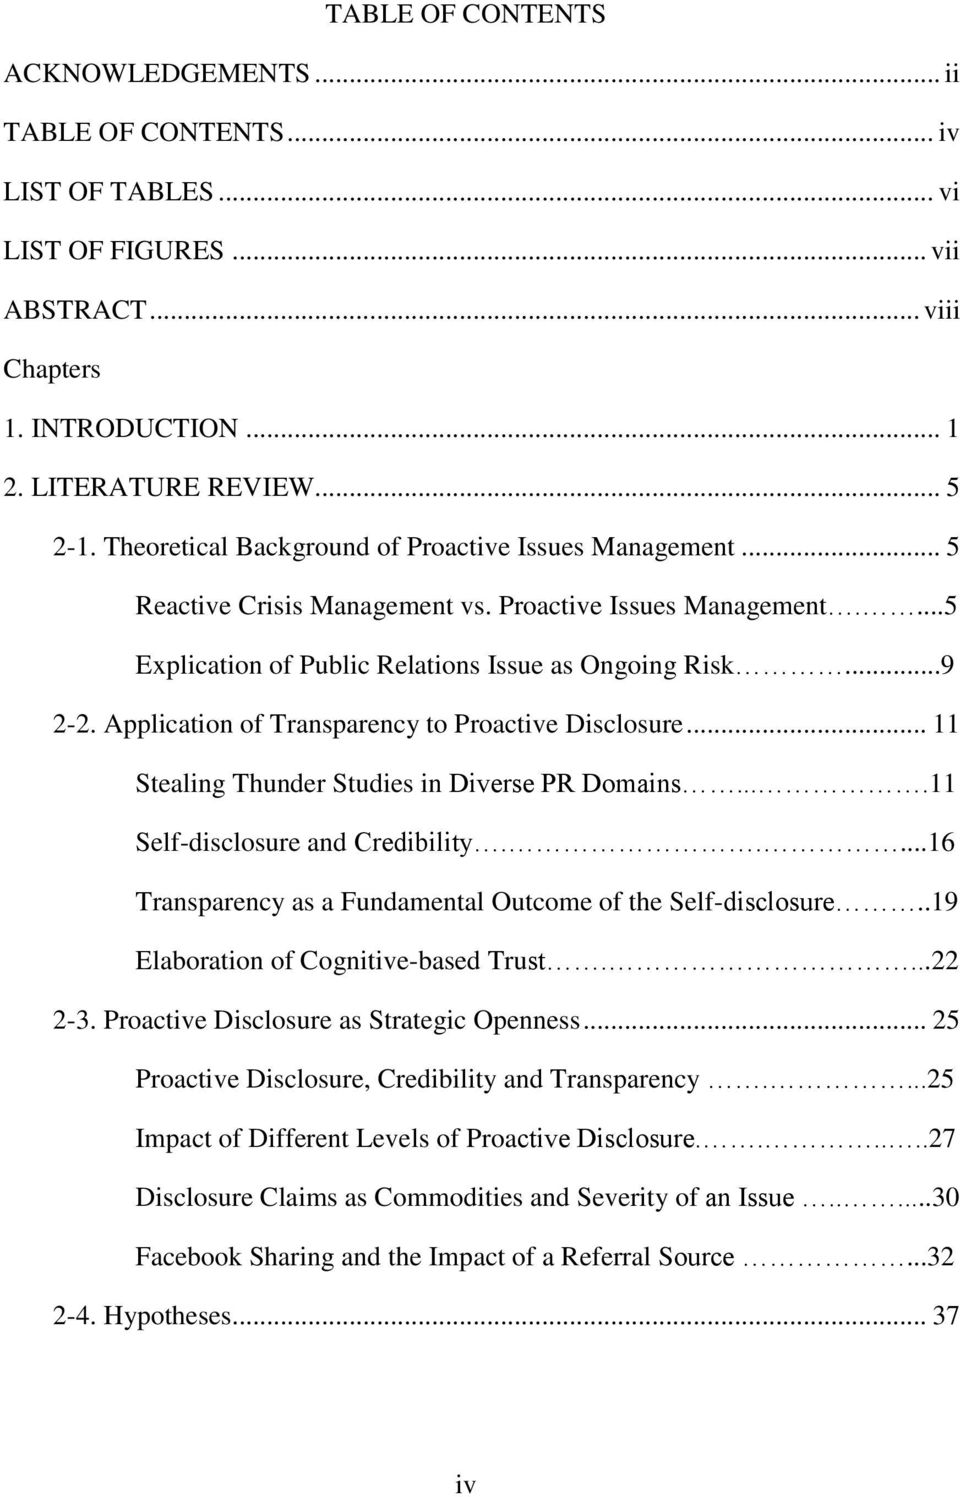 Application of Transparency to Proactive Disclosure... 11 Stealing Thunder Studies in Diverse PR Domains....11 Self-disclosure and Credibility.